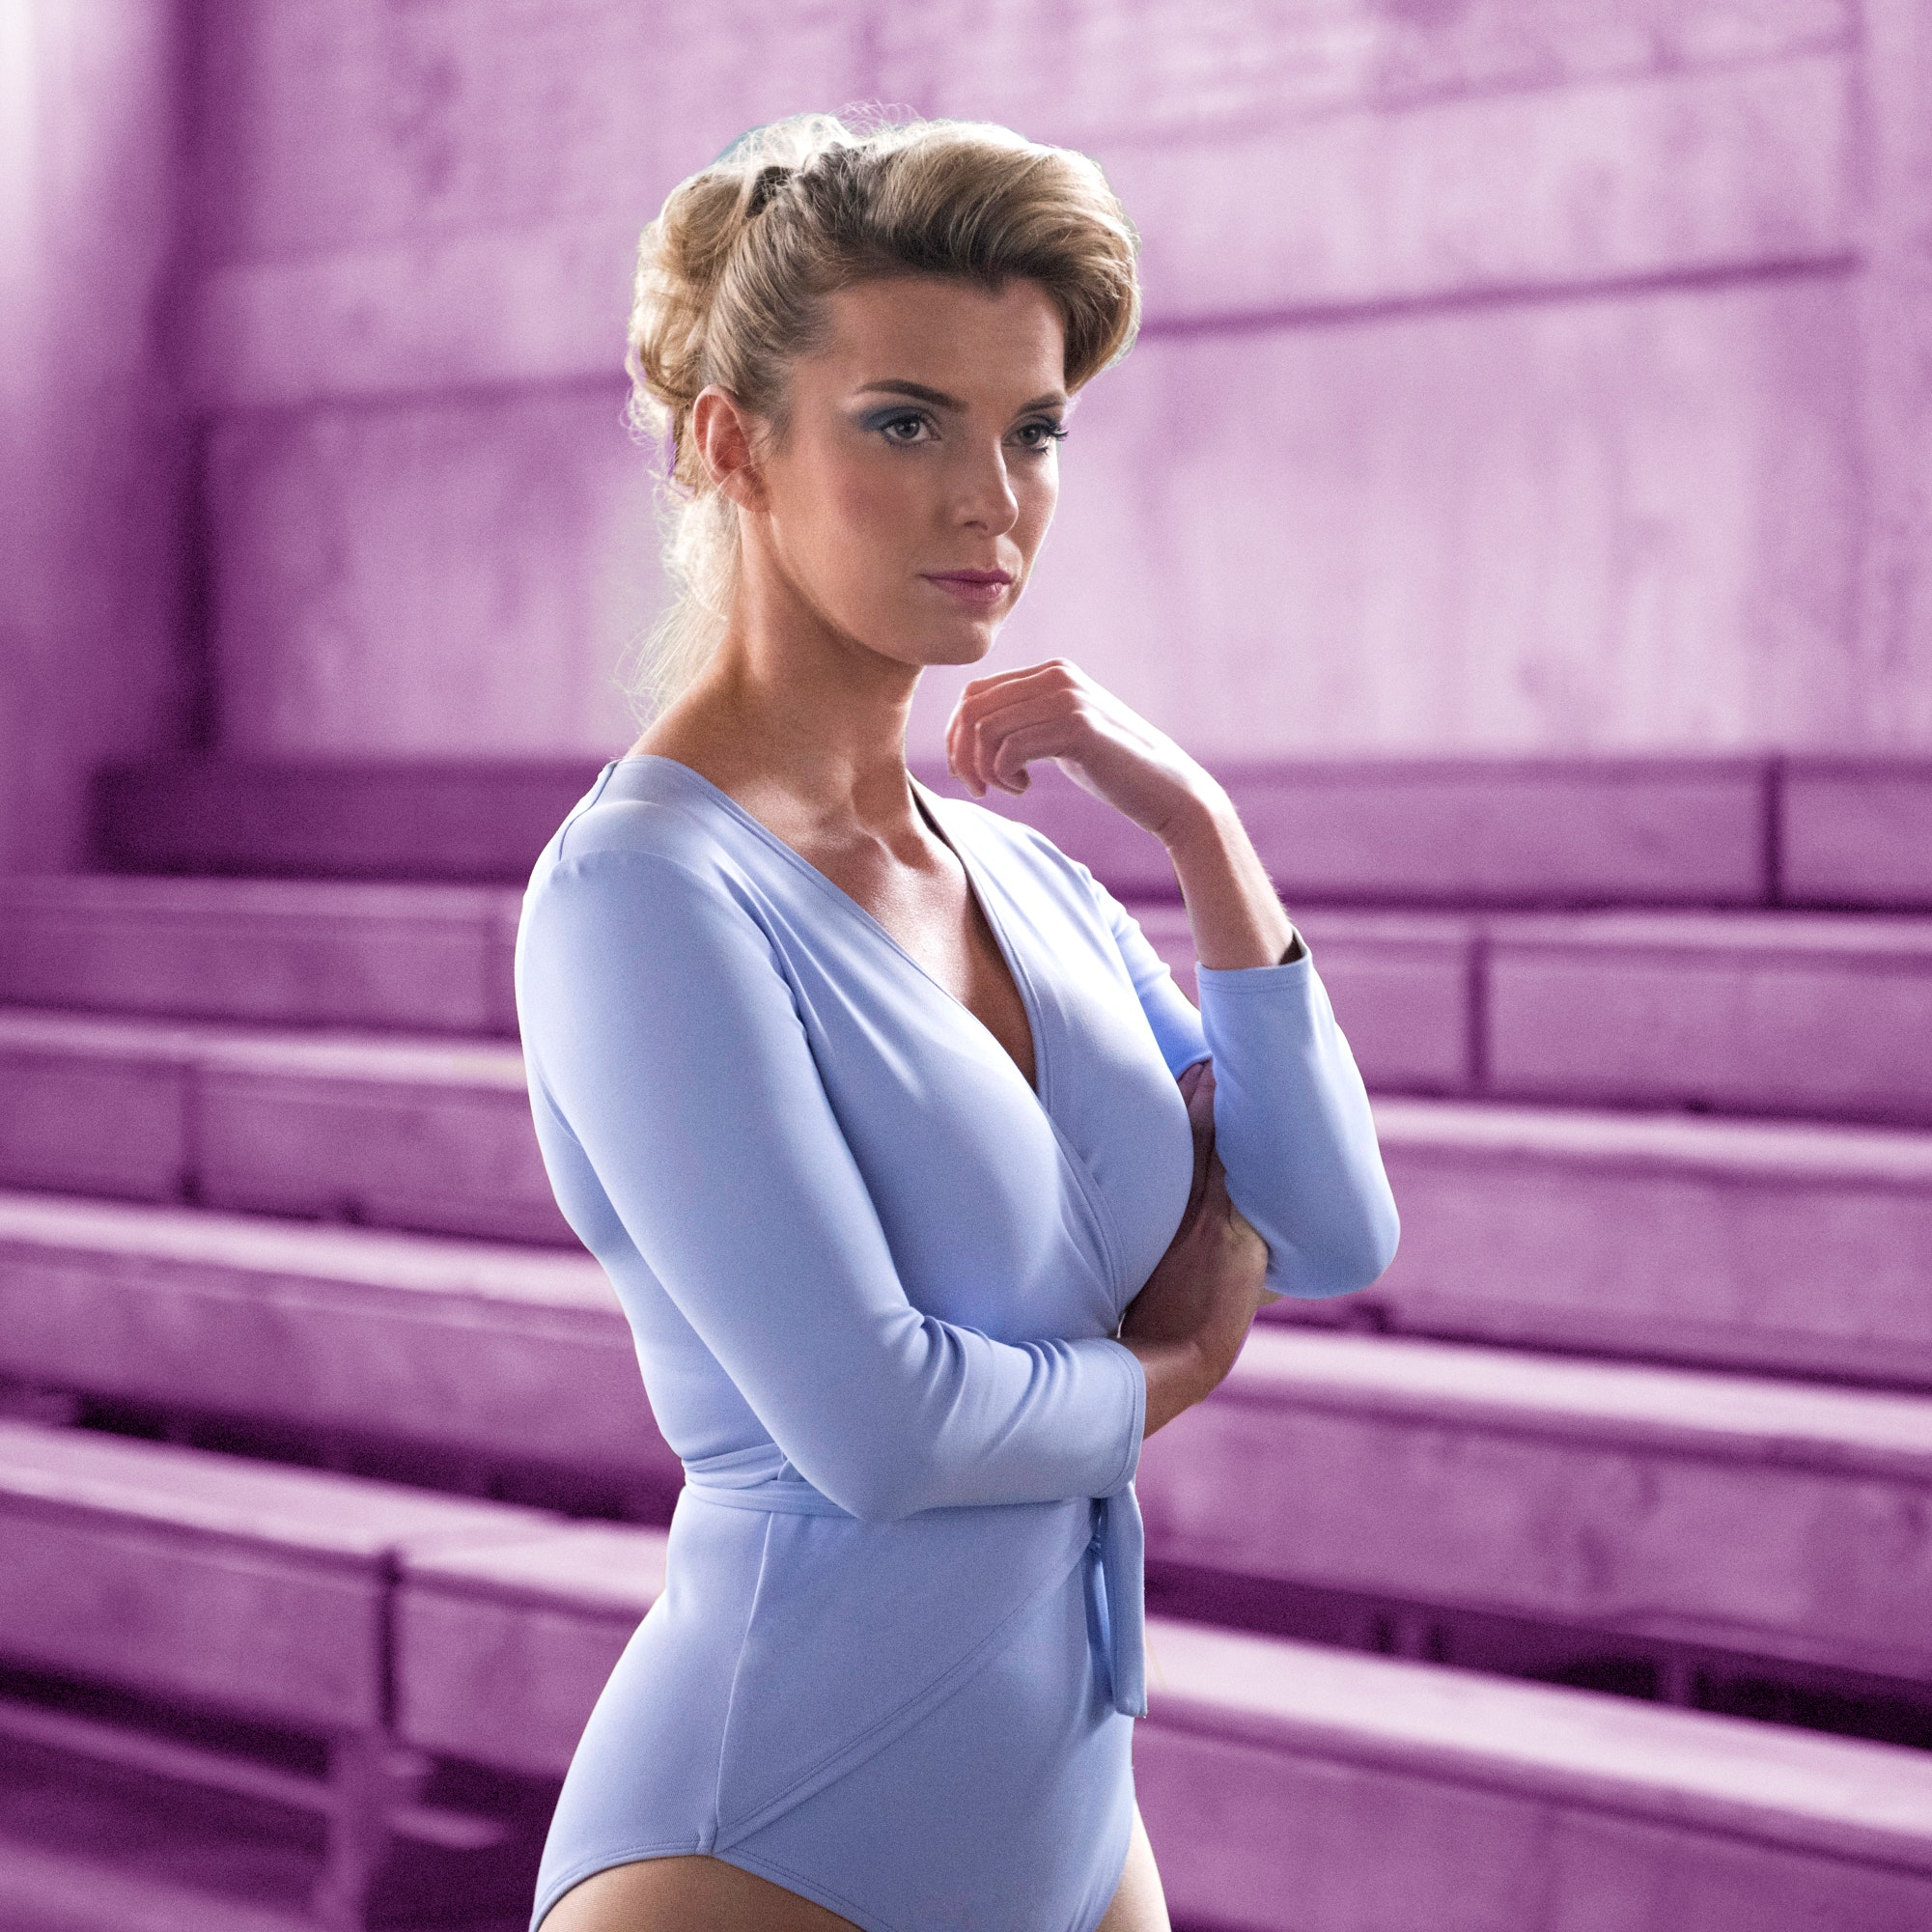 Betty gilpin hot. 51 Sexy and Hot Betty Gilpin Pictures